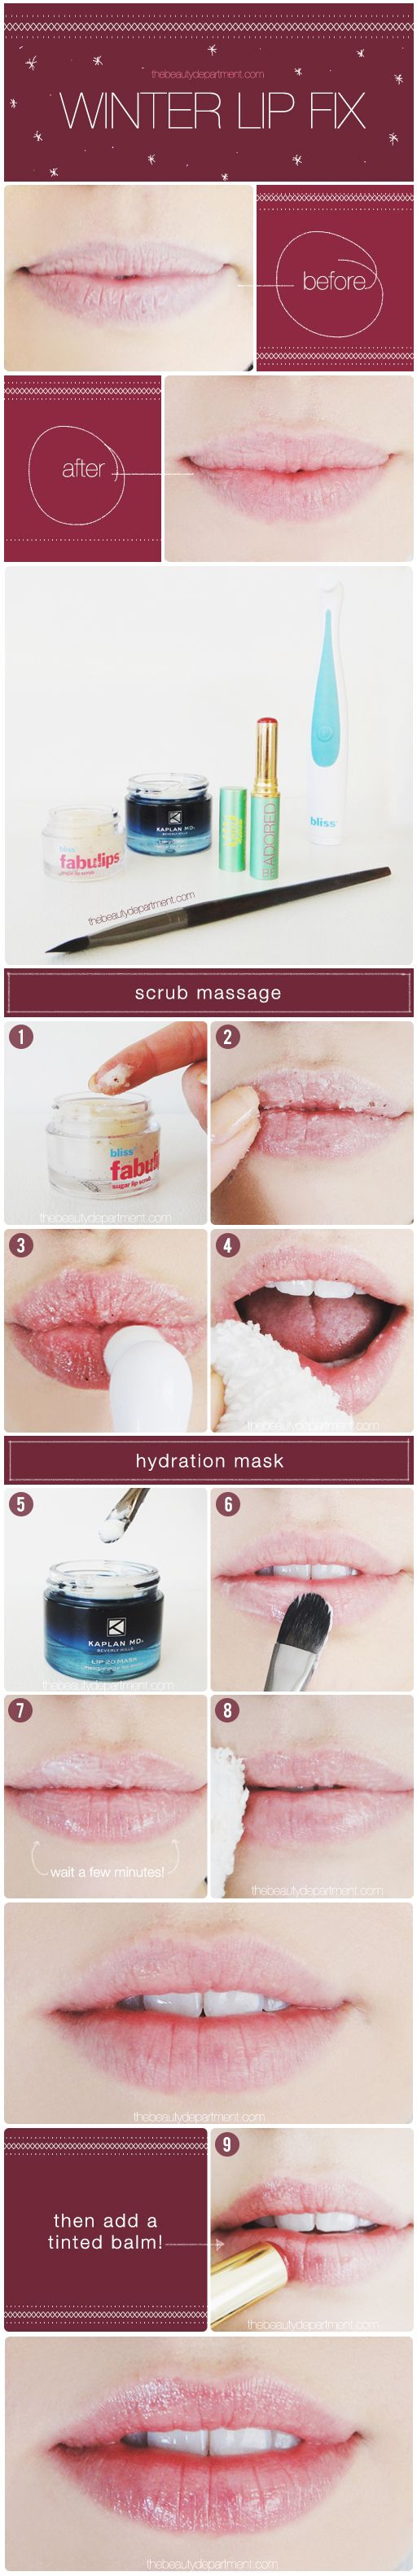 A little help for chapped lips!